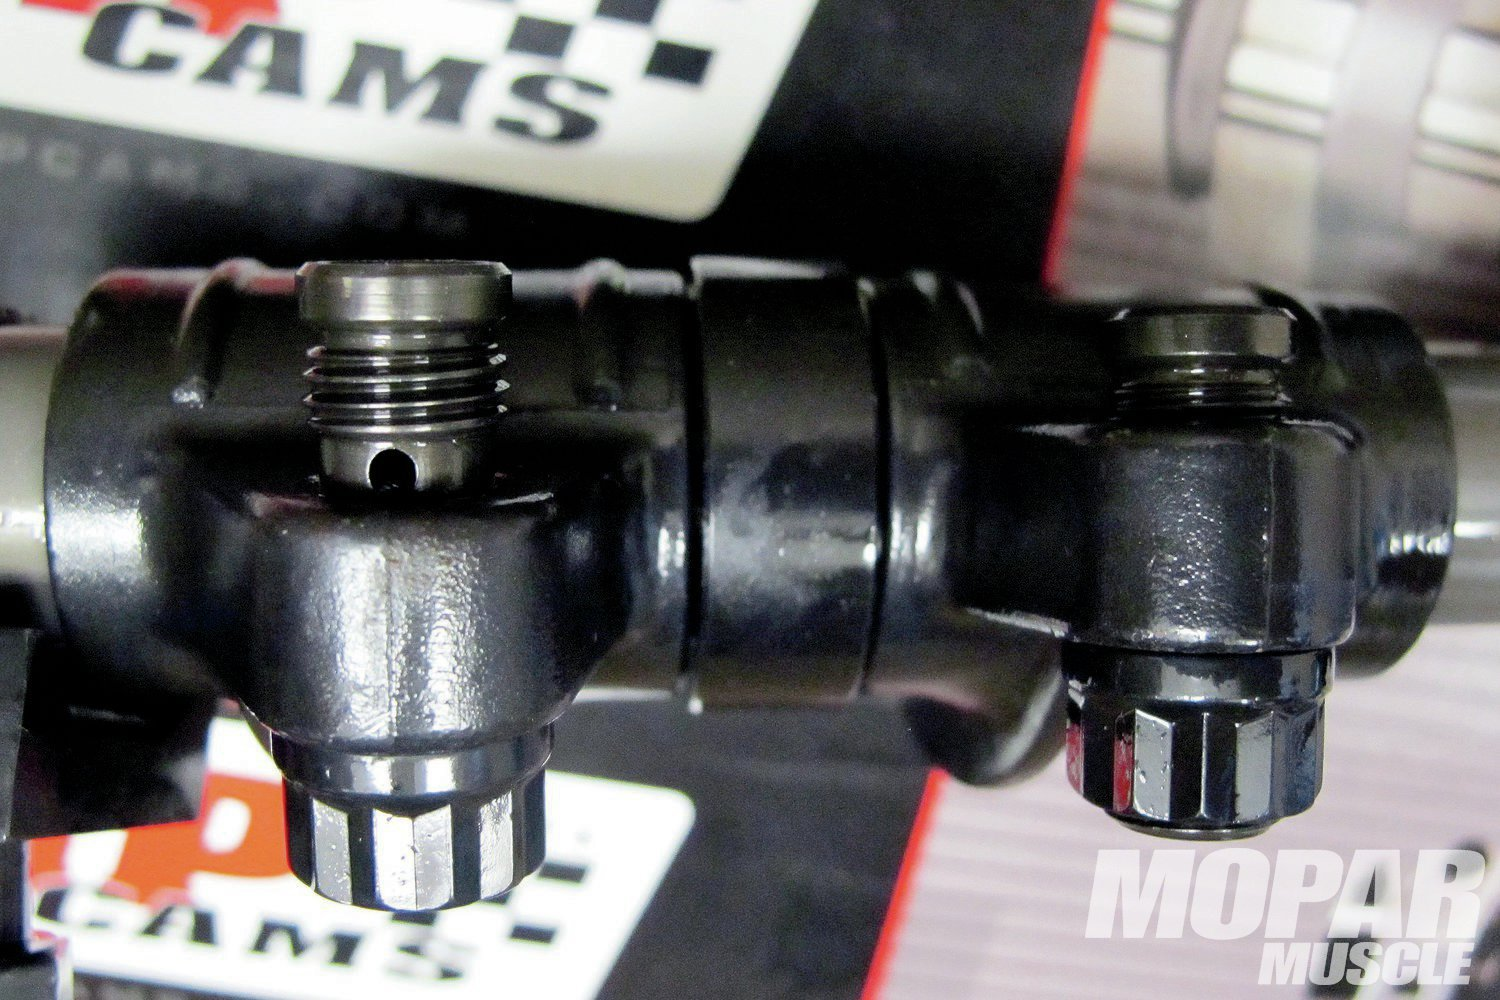 07 Switching from a hydraulic to a solid roller cam will also require different length pushrods, so be sure to measure pushrod length for proper rocker arm geometry. Notice the adjusting screw on the left is showing a thread or two on the bottom and top for proper lubrication to the pushrod and valve tip. With too short of a pushrod, the oiling hole will be exposed. For this build-up along with other RB motors with Edelbrock Performer RPM heads, we've used Comp Hi-Tech pushrods (9.200-inch length) with the Comp Pro Magnum Rockers.